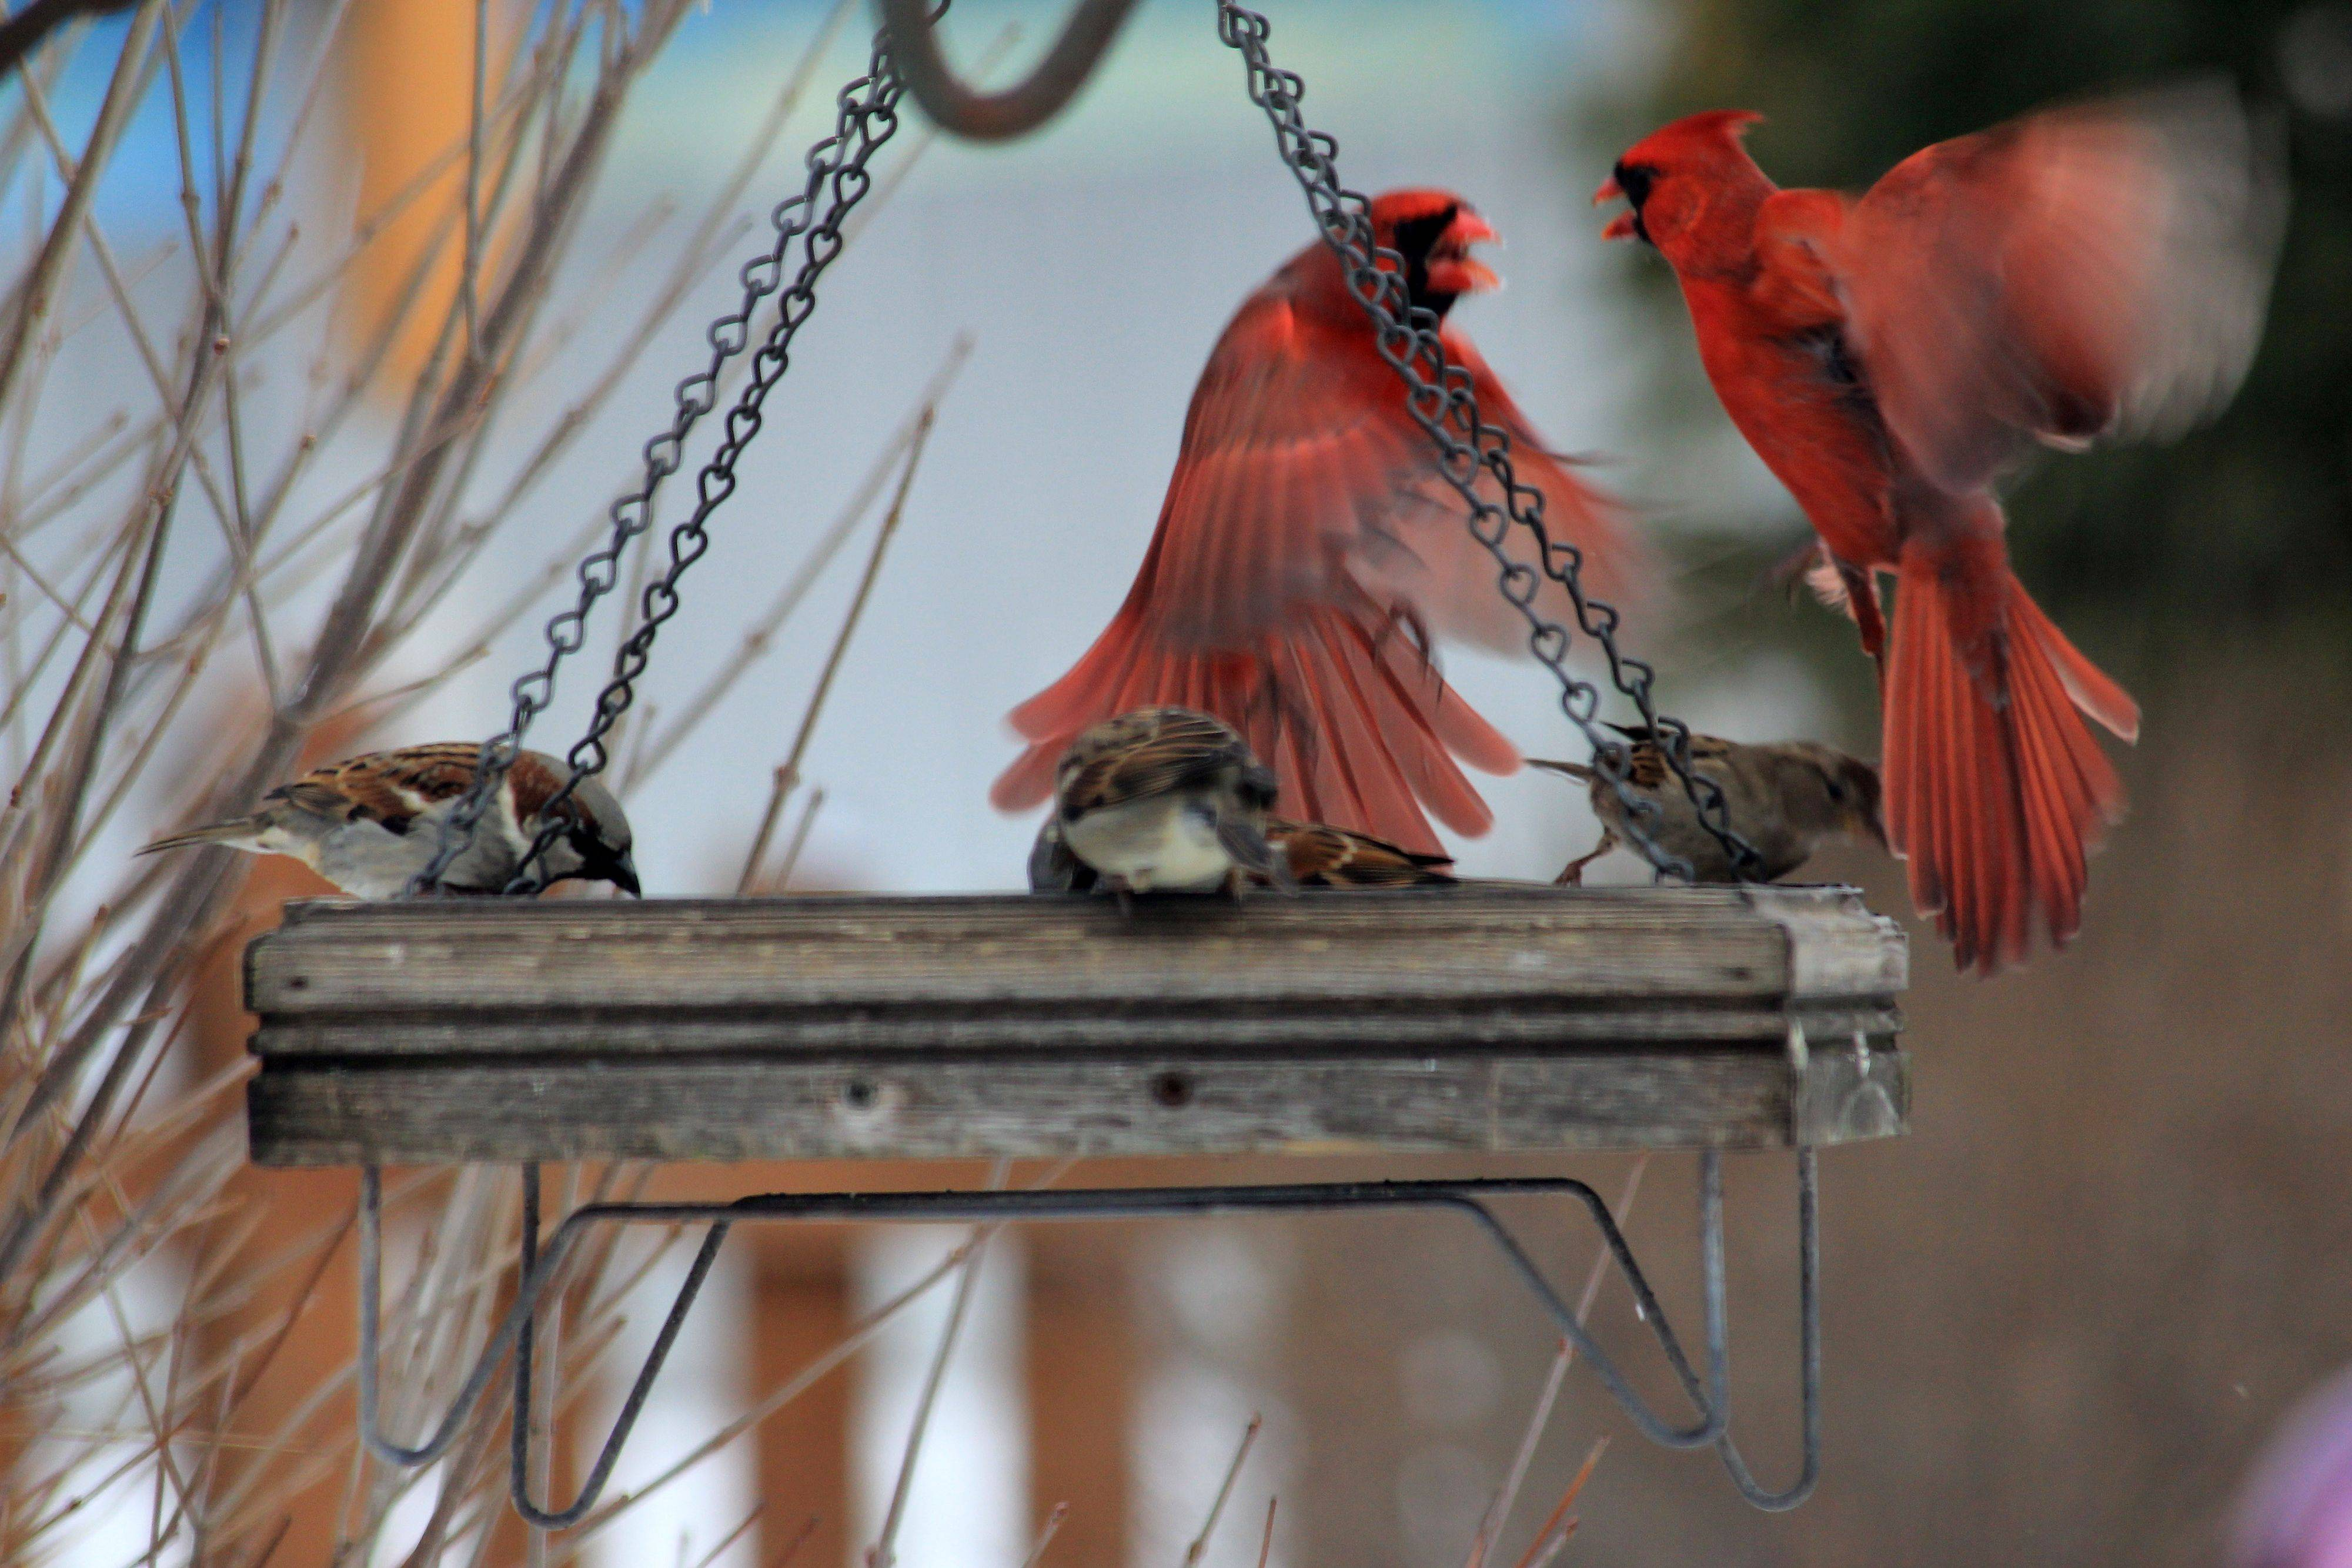 While taking pictures of the birds on the feeder in our back yard, I caught this moment between two male Cardinals that seemed to be having a disagreement at to who's turn it was to be on the feeder.